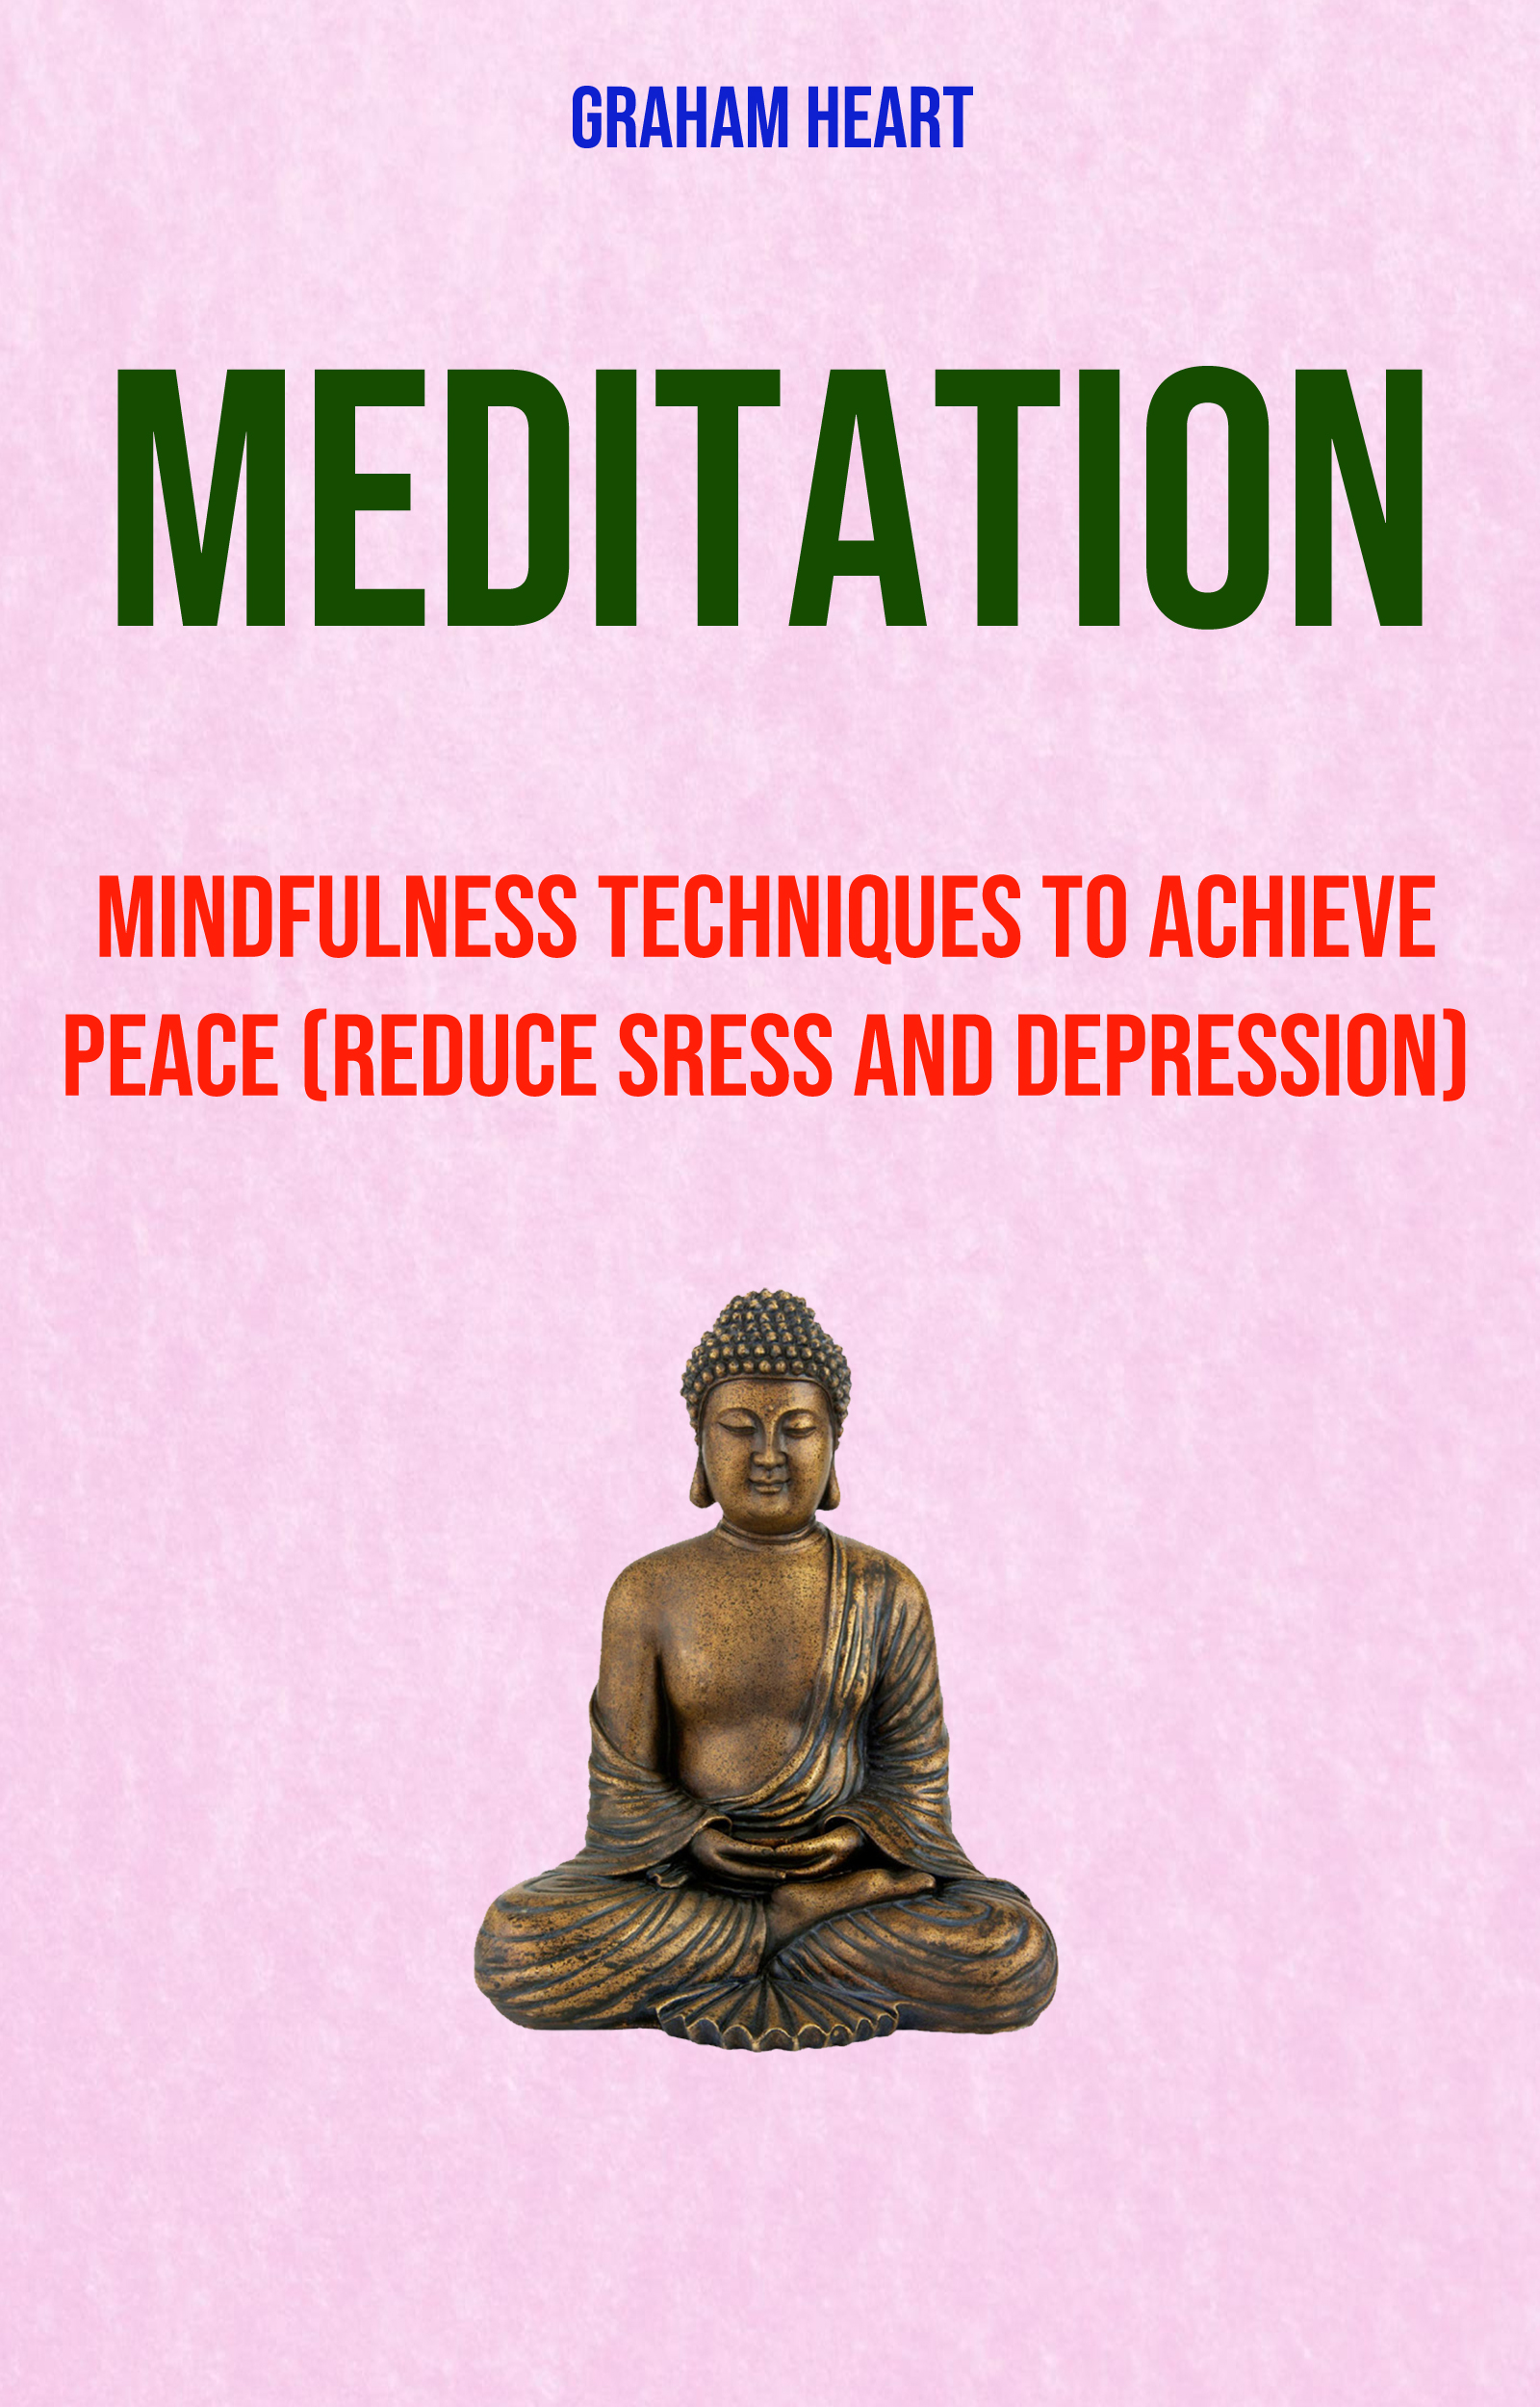 Meditation: mindfulness techniques to achieve peace (reduce sress and depression)